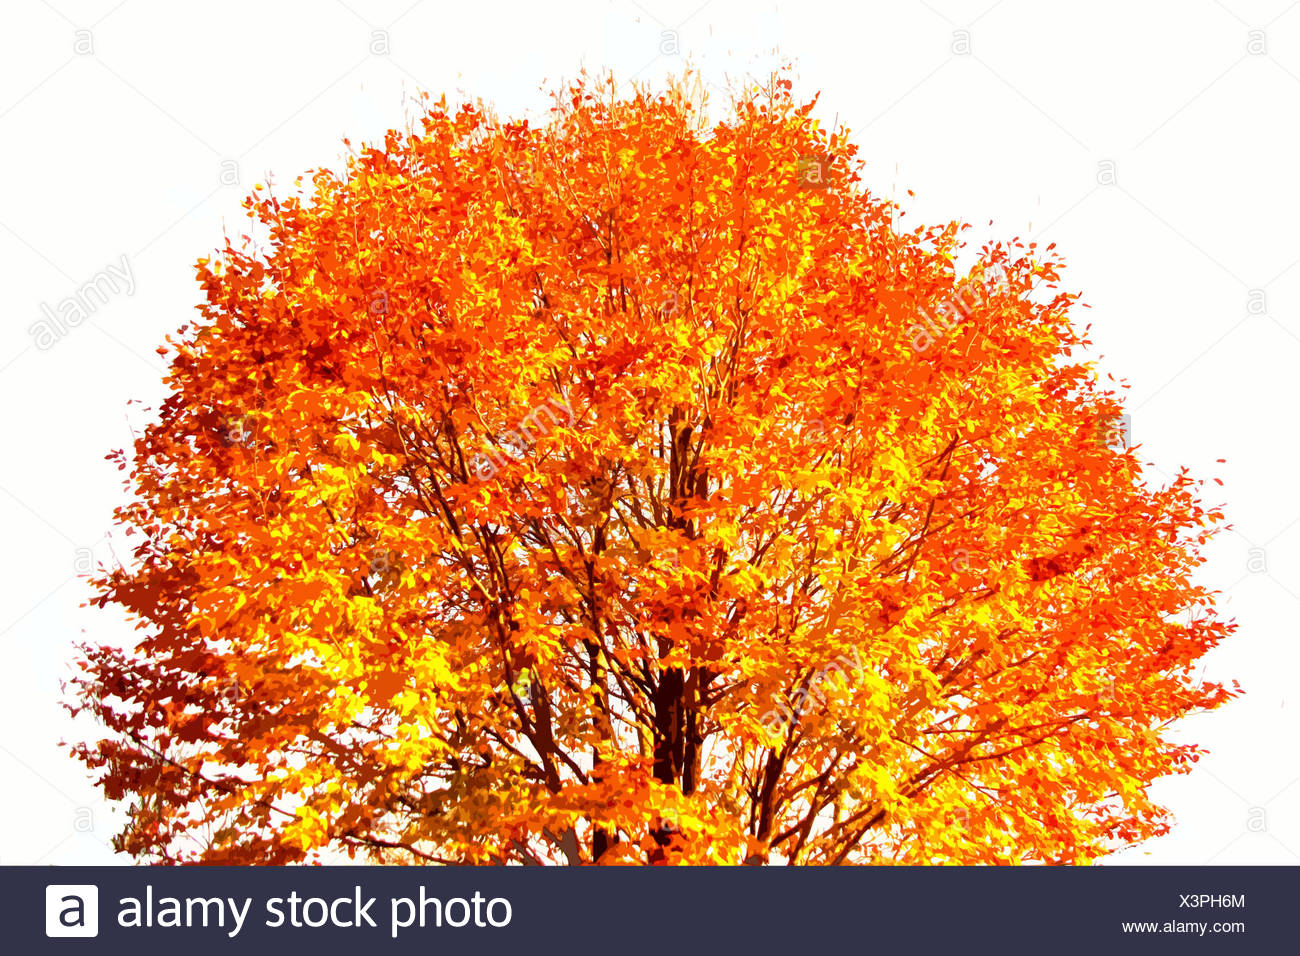 Series baume Autumn tree Maple E. Kleinert - Stock Image